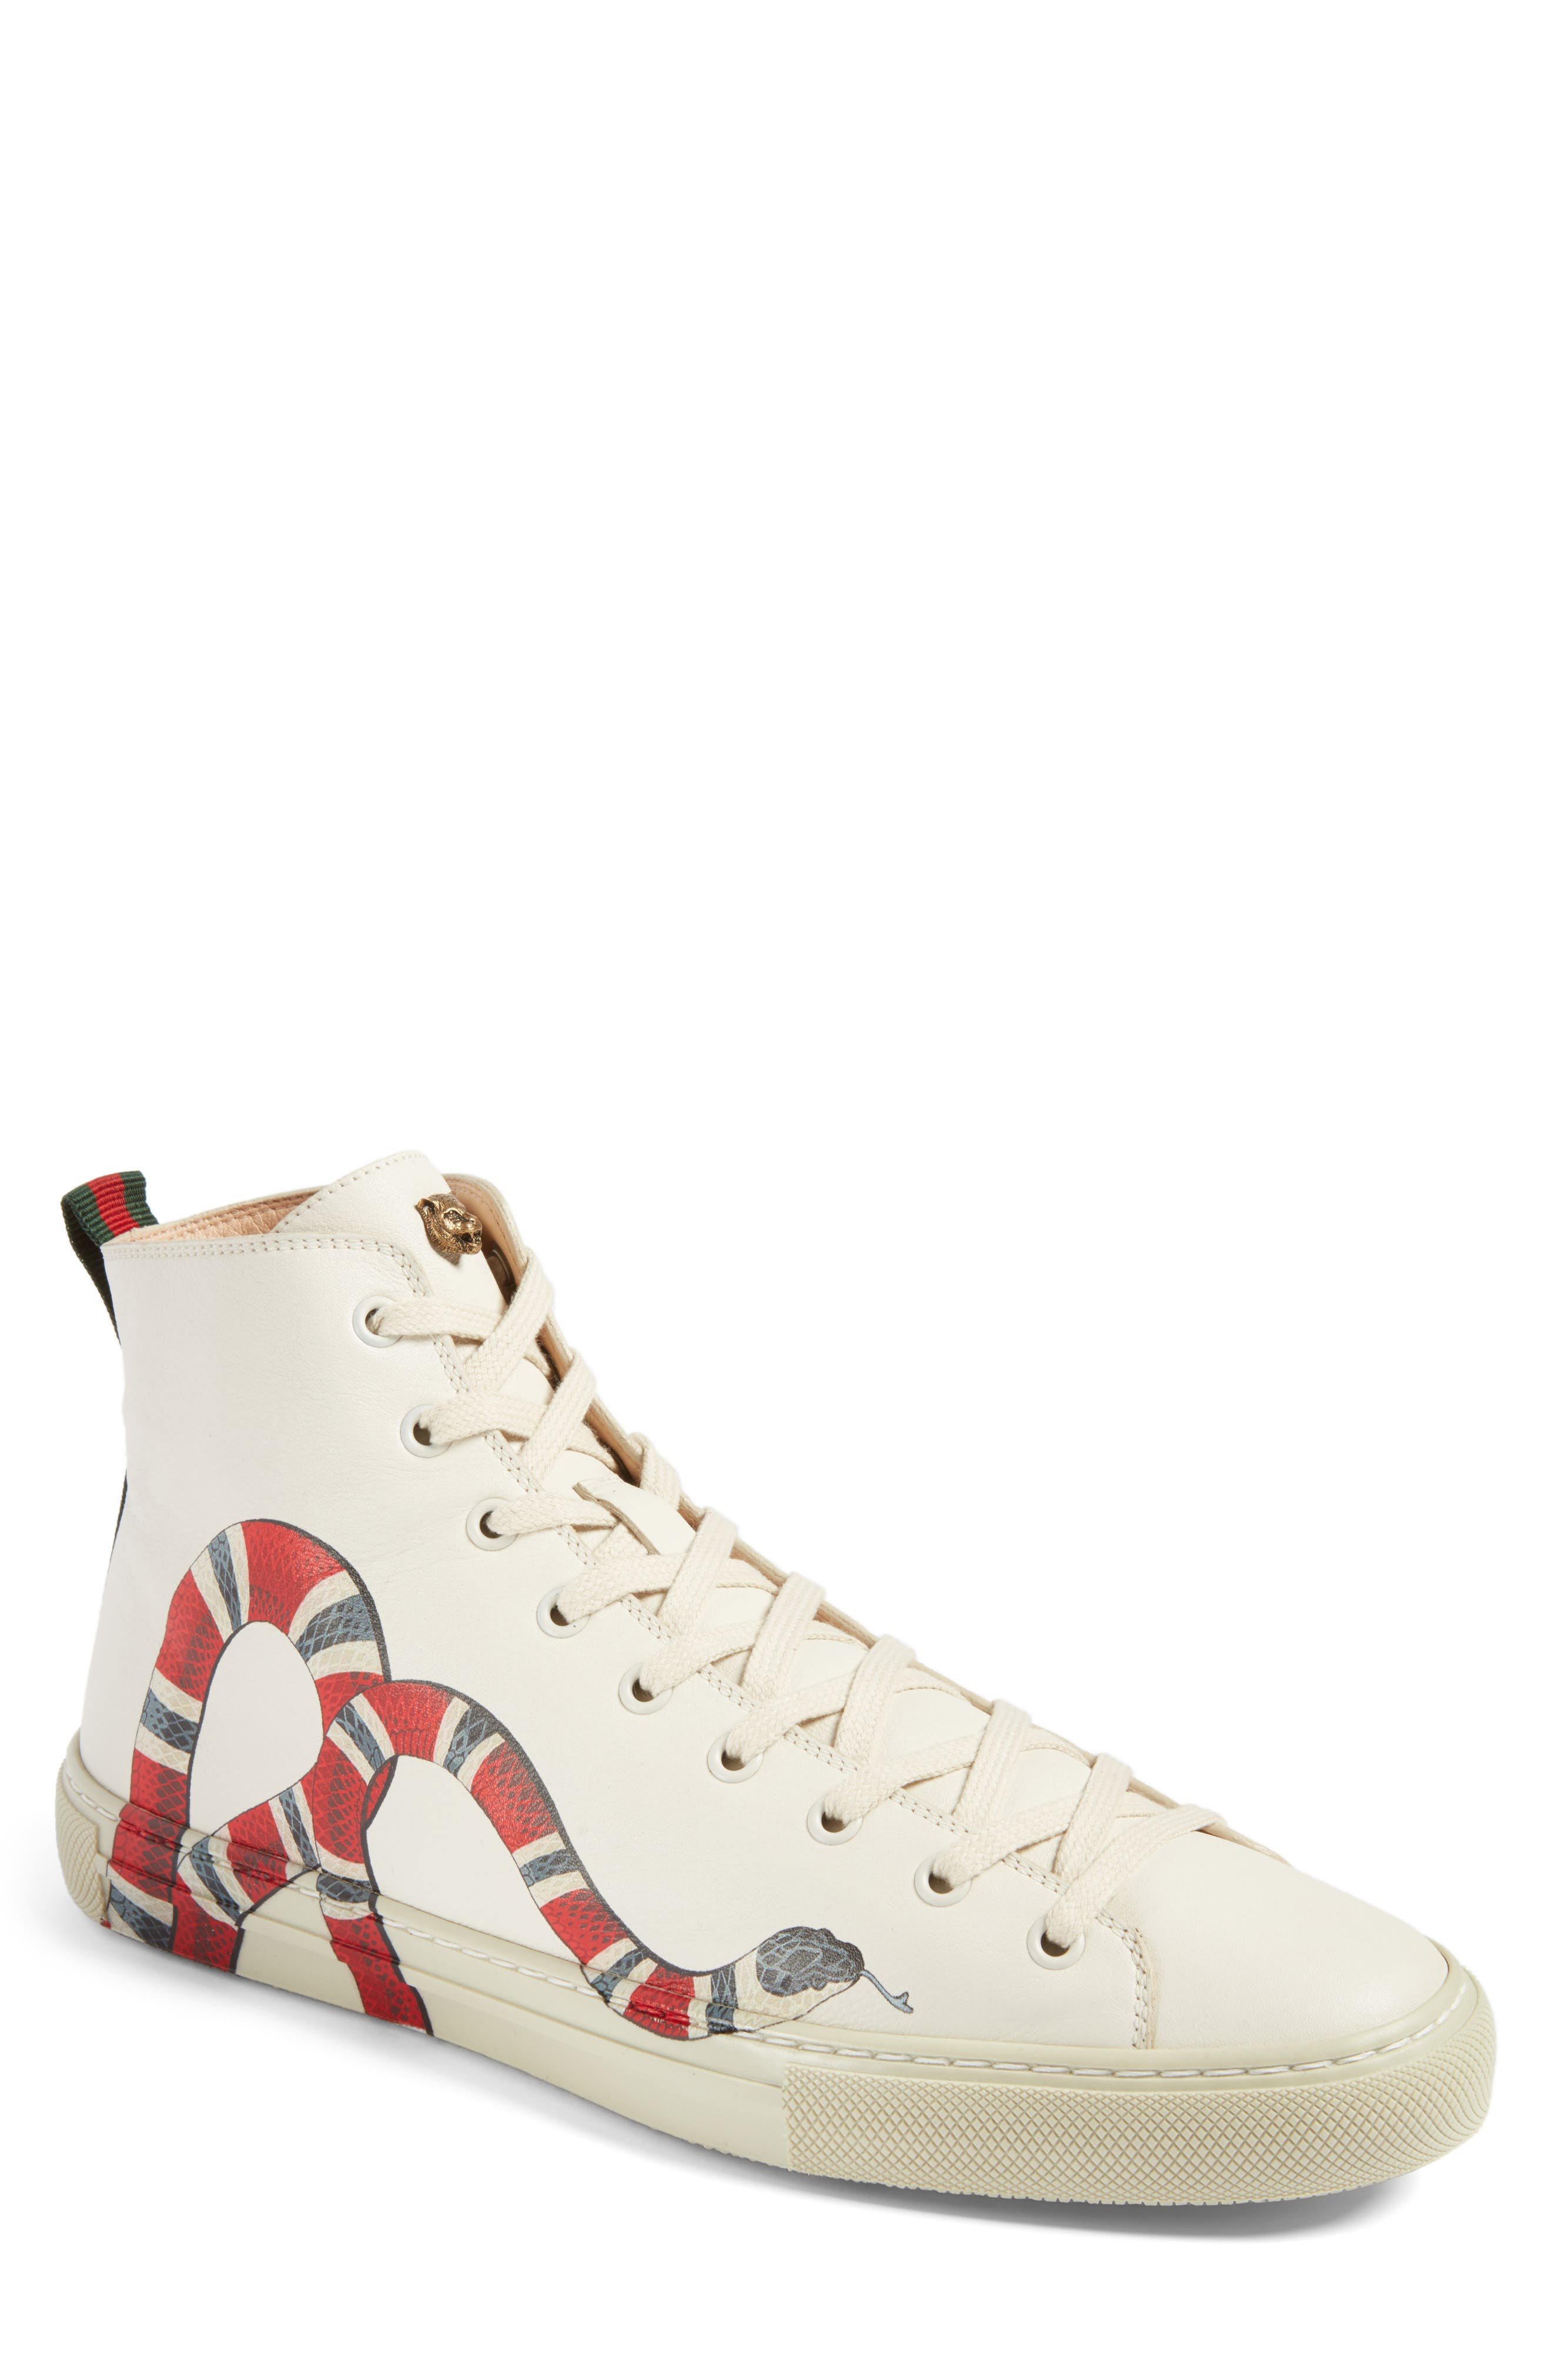 Gucci Major High Top Sneaker (Men)